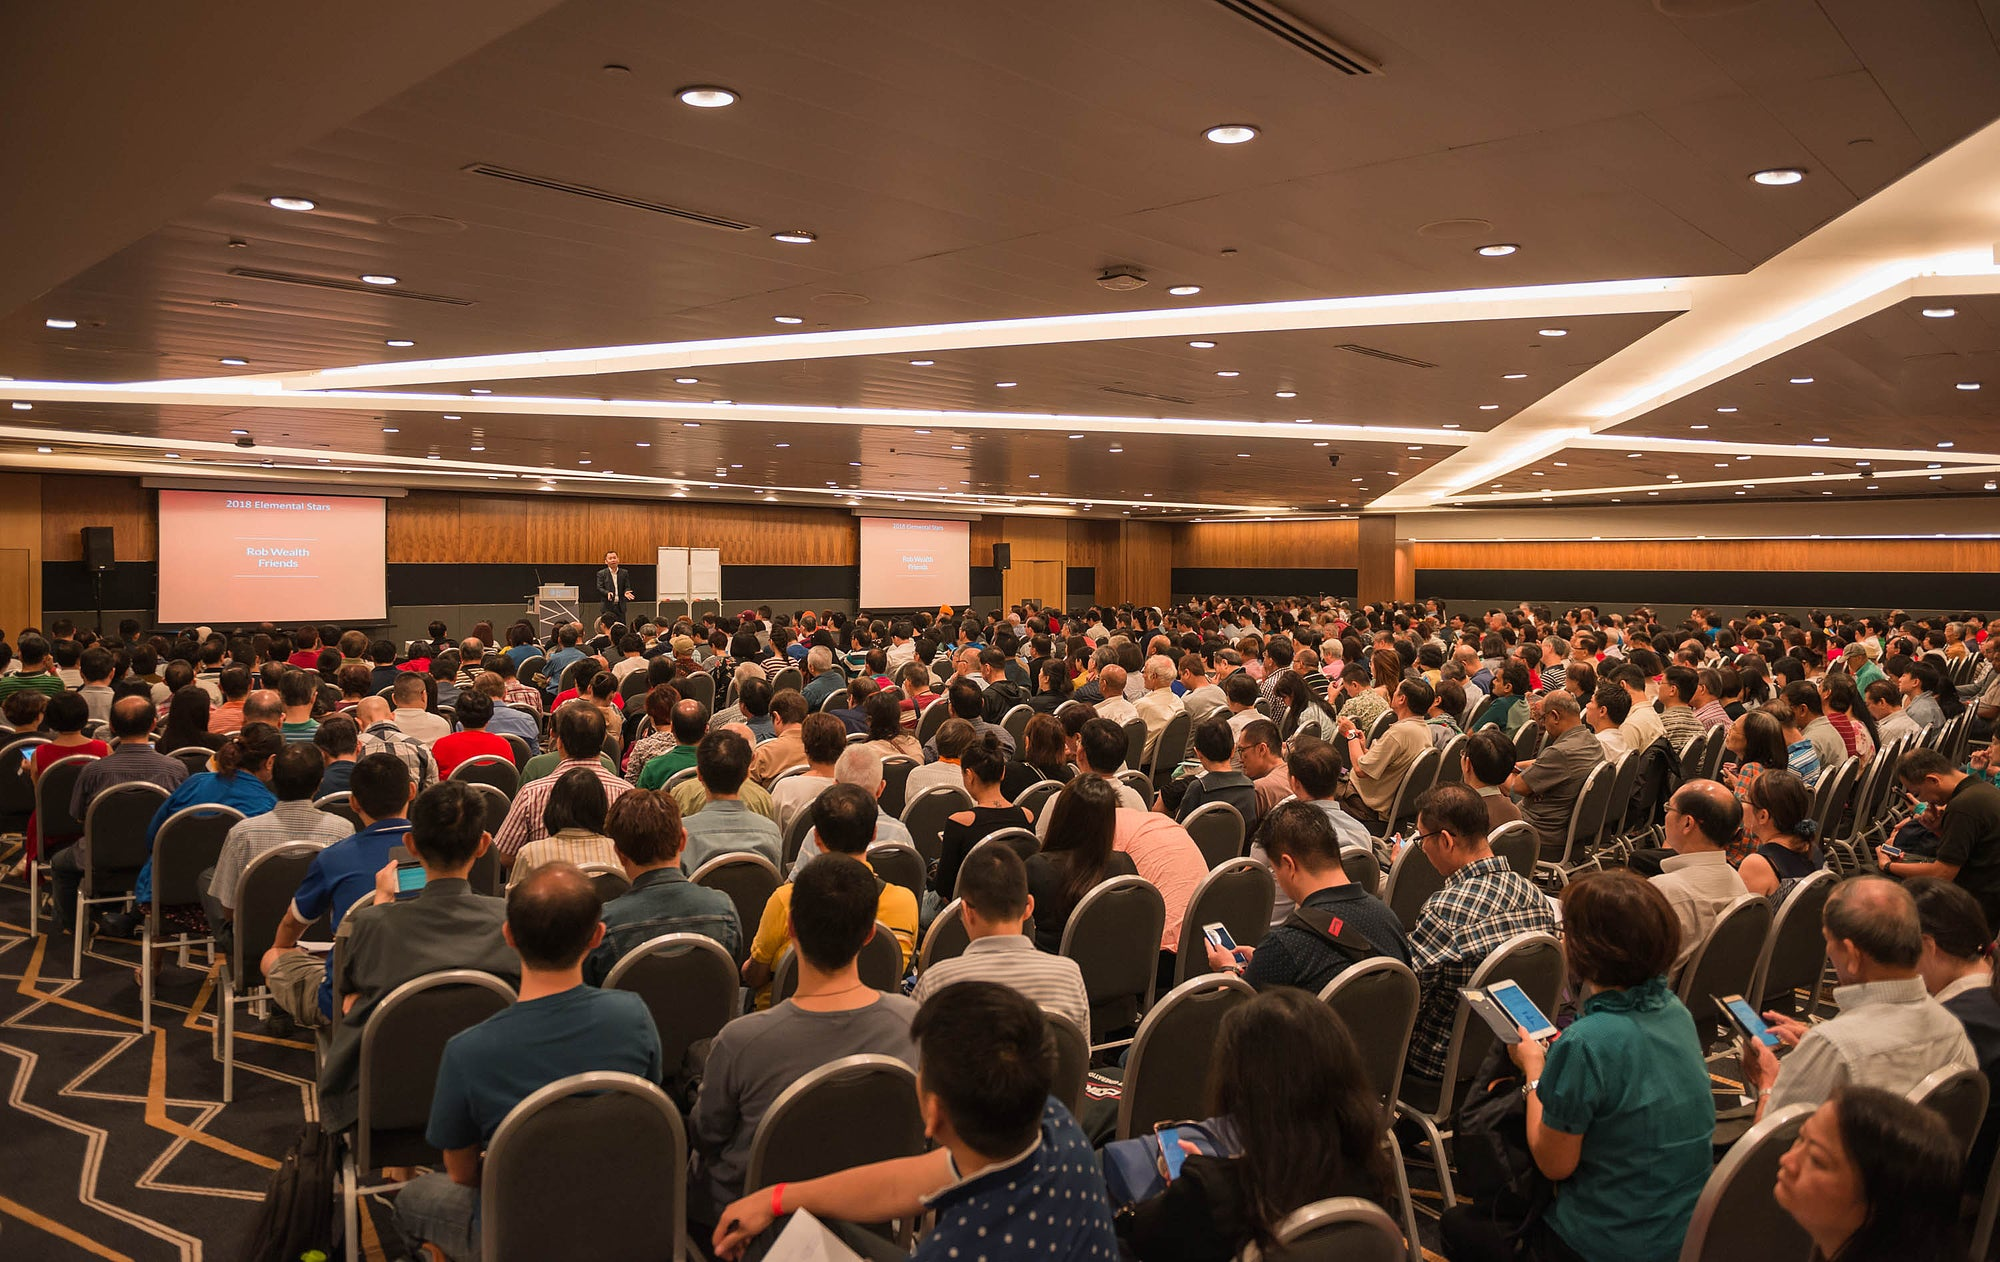 Kevin Foong Destiny and Astrology 2018 Live Seminar at Suntec City Convention Singapore